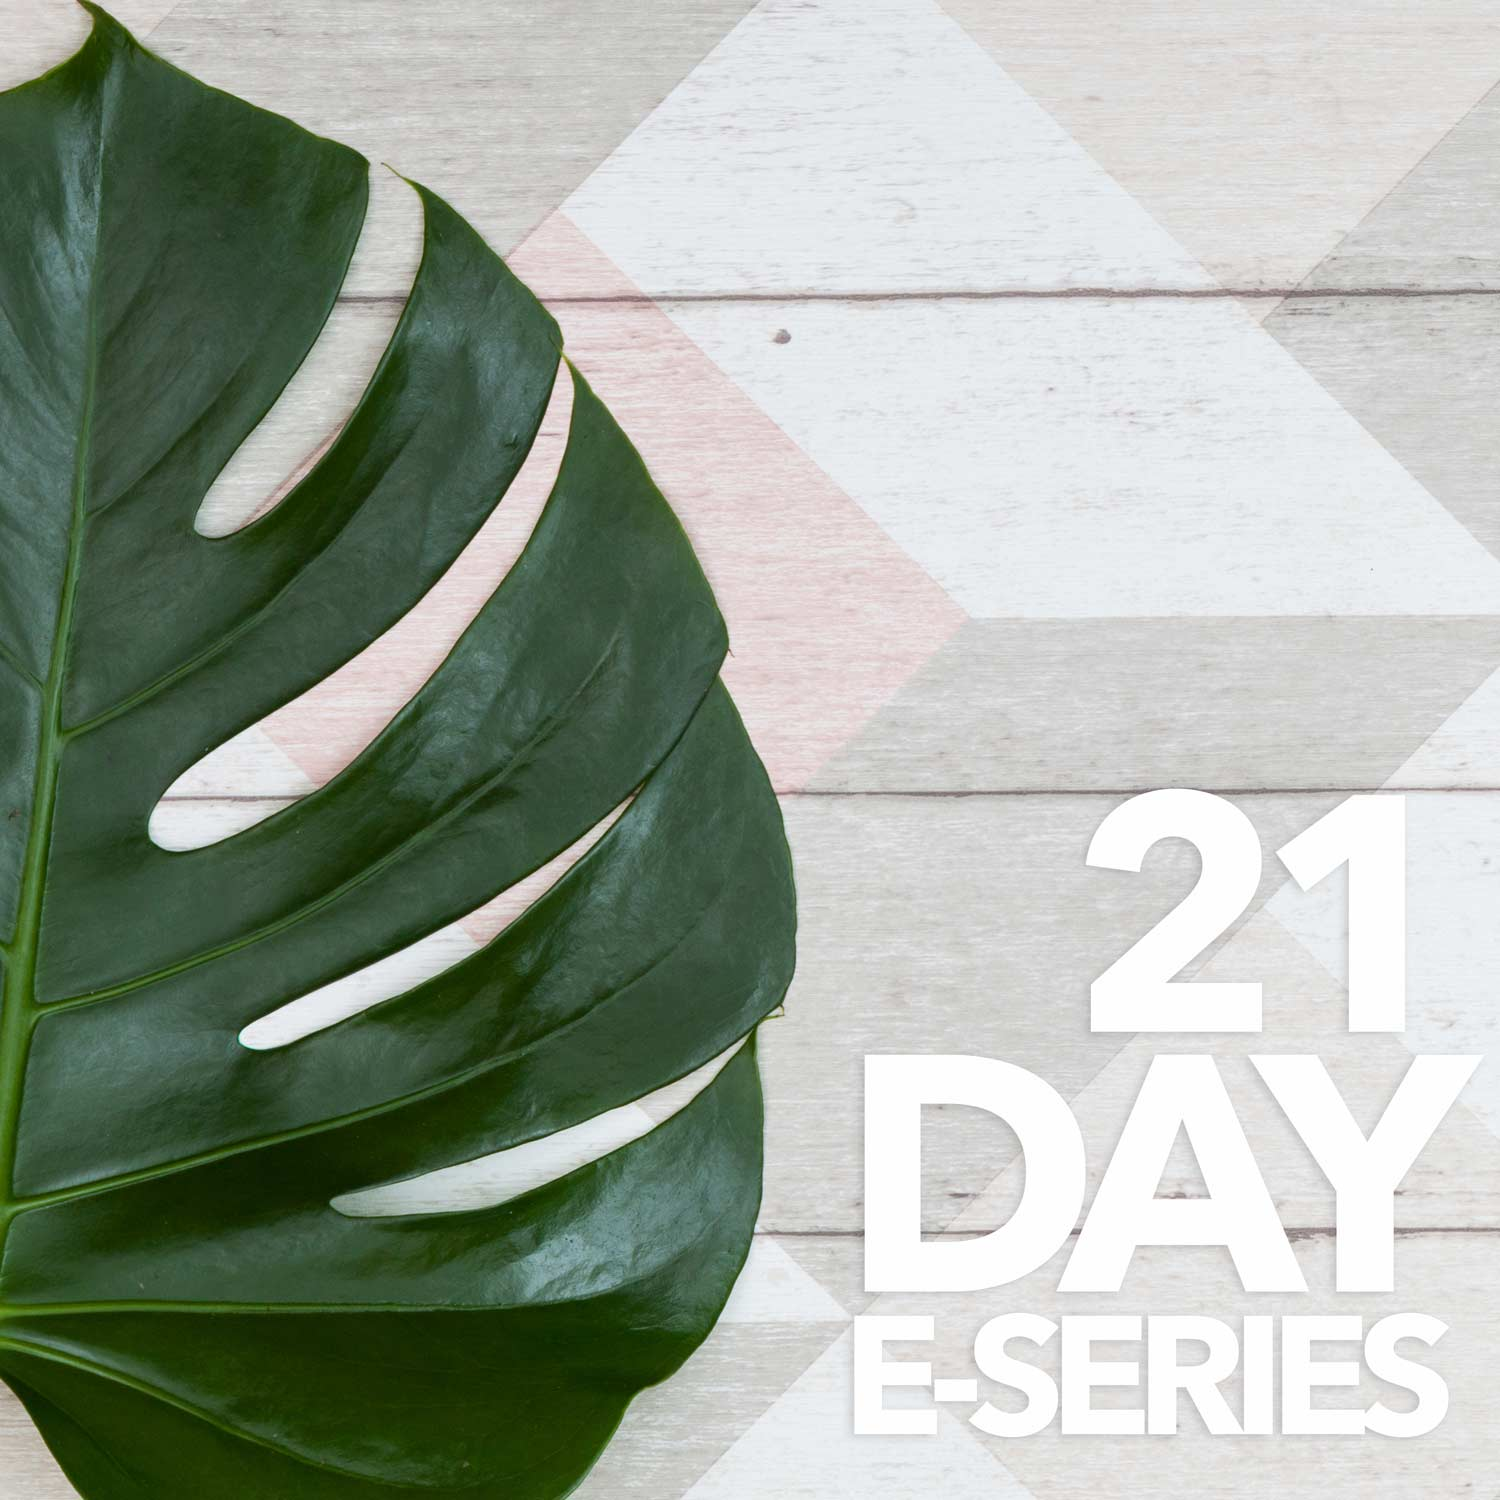 The 21 Day Keto Kickstart Program - E-Series & Digital Downloads